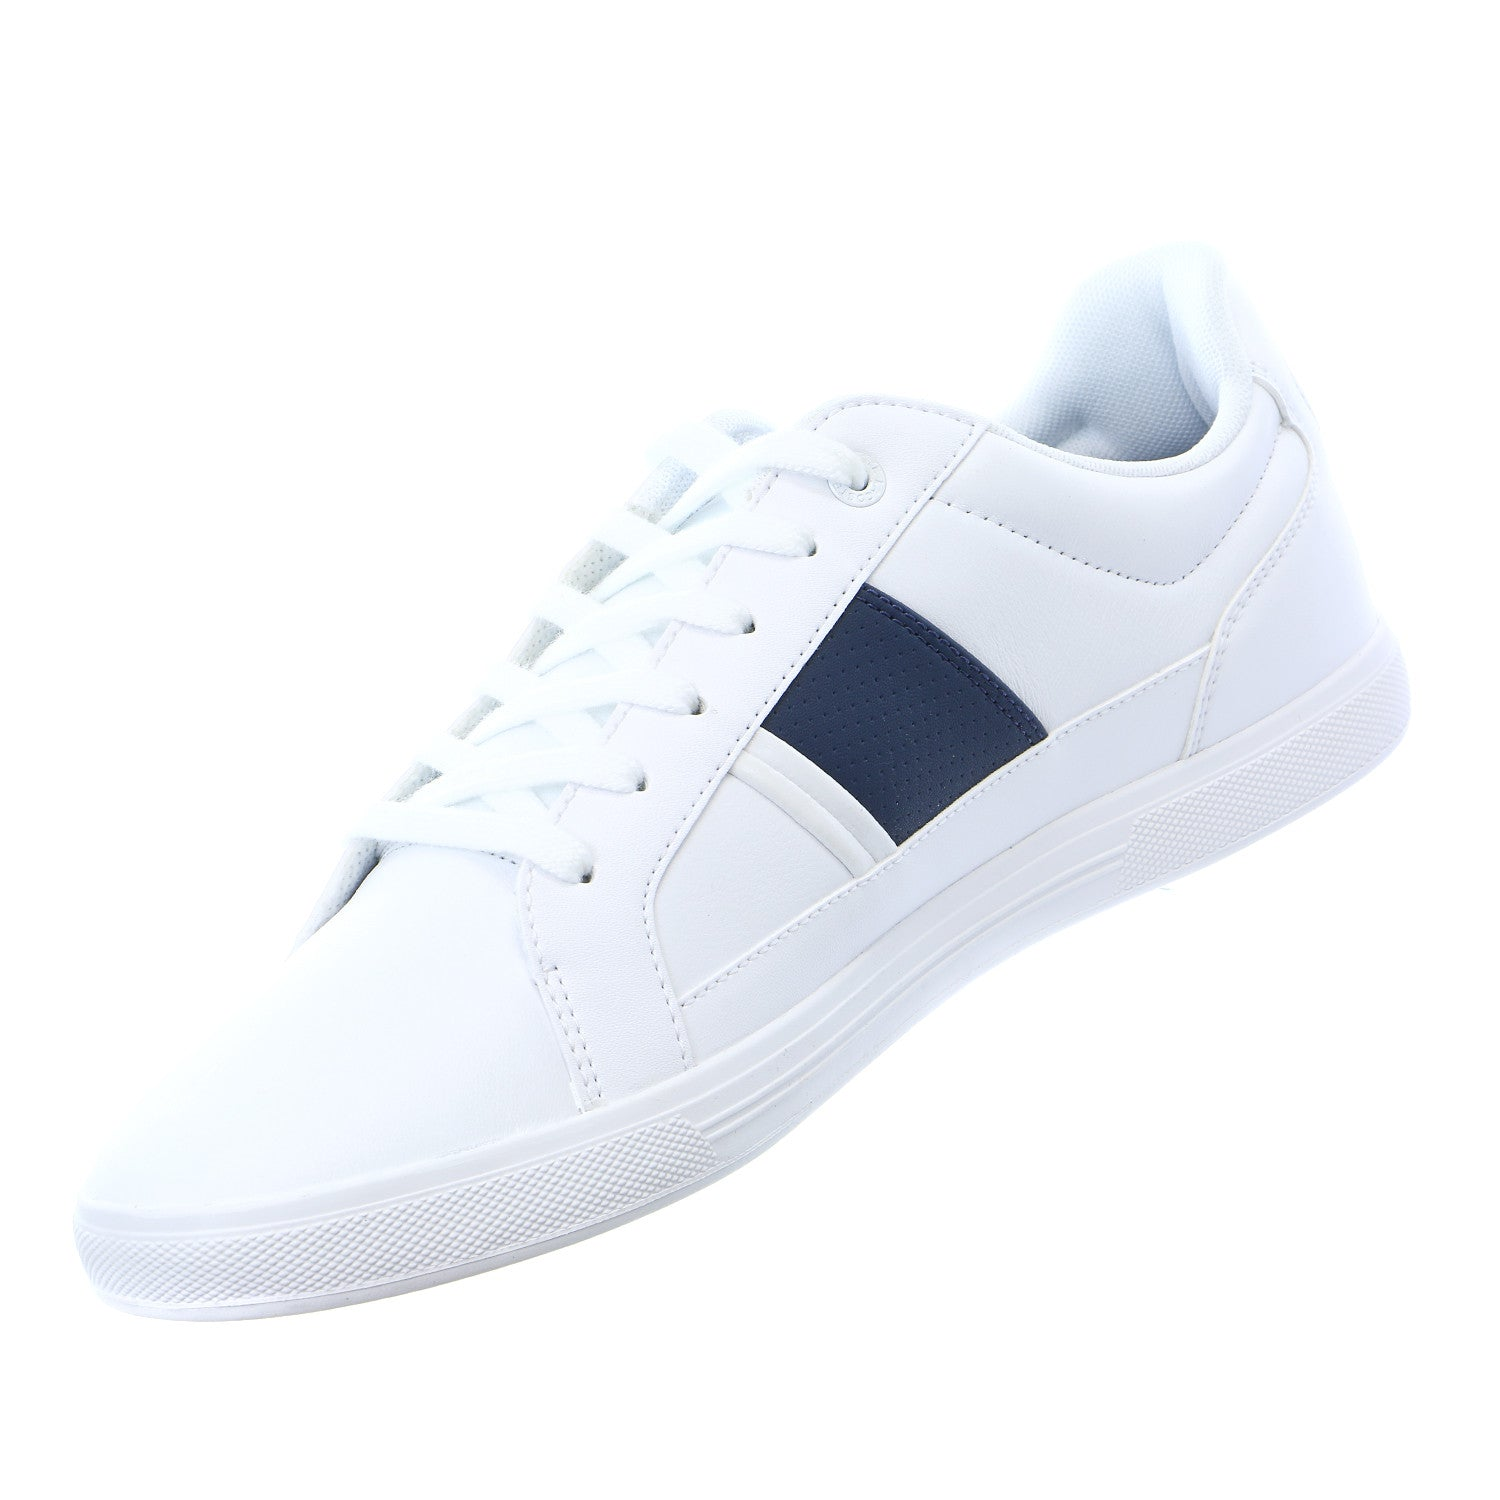 Europa Lcr3 Lacoste Shoe Shoplifestyle Mens Fashion Sneaker BSwvwdxq6